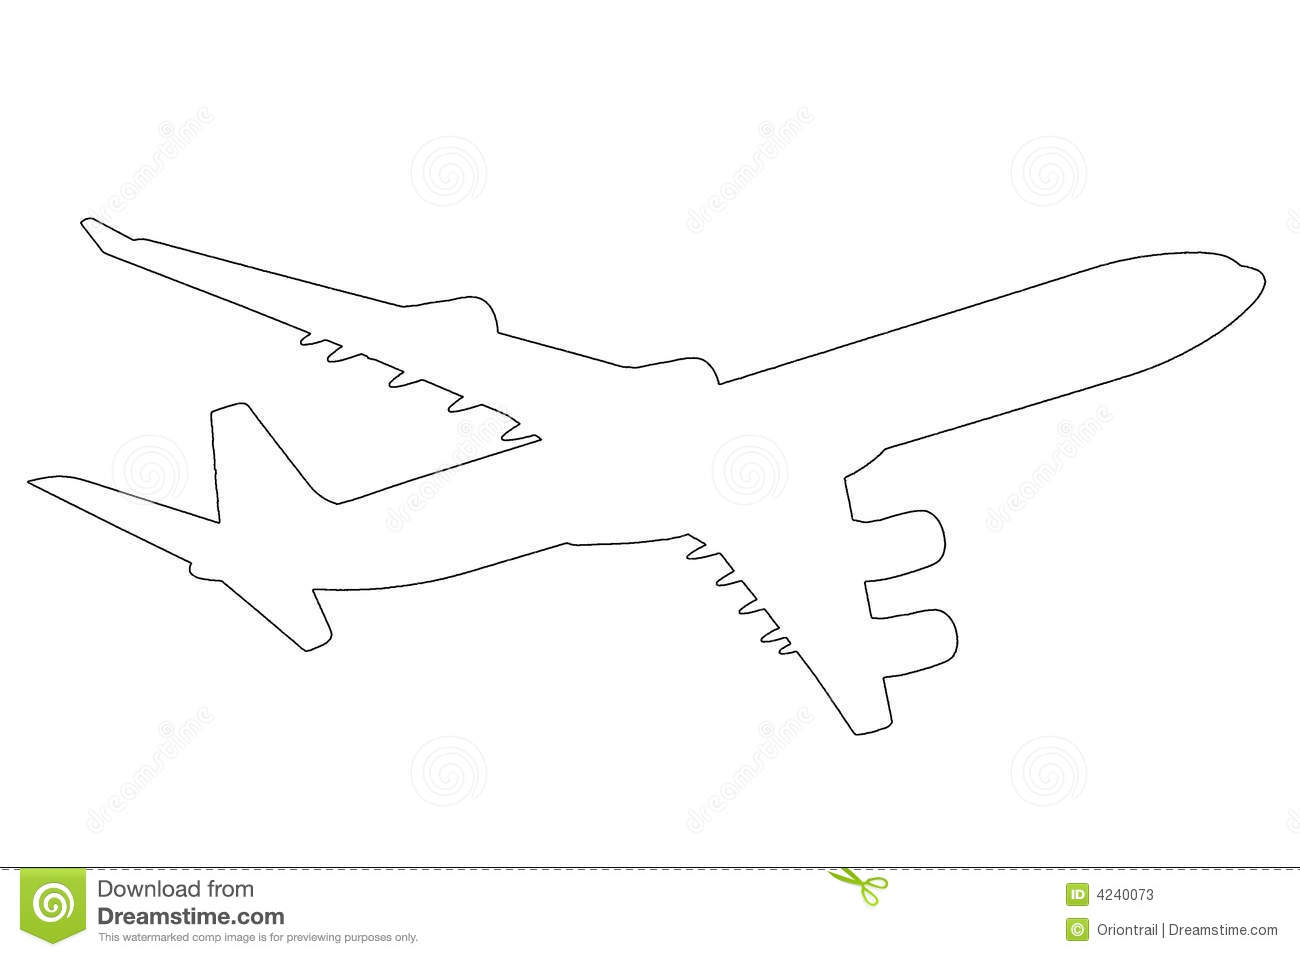 Airplane Outline Illustration Stock Photos - Image: 4240073